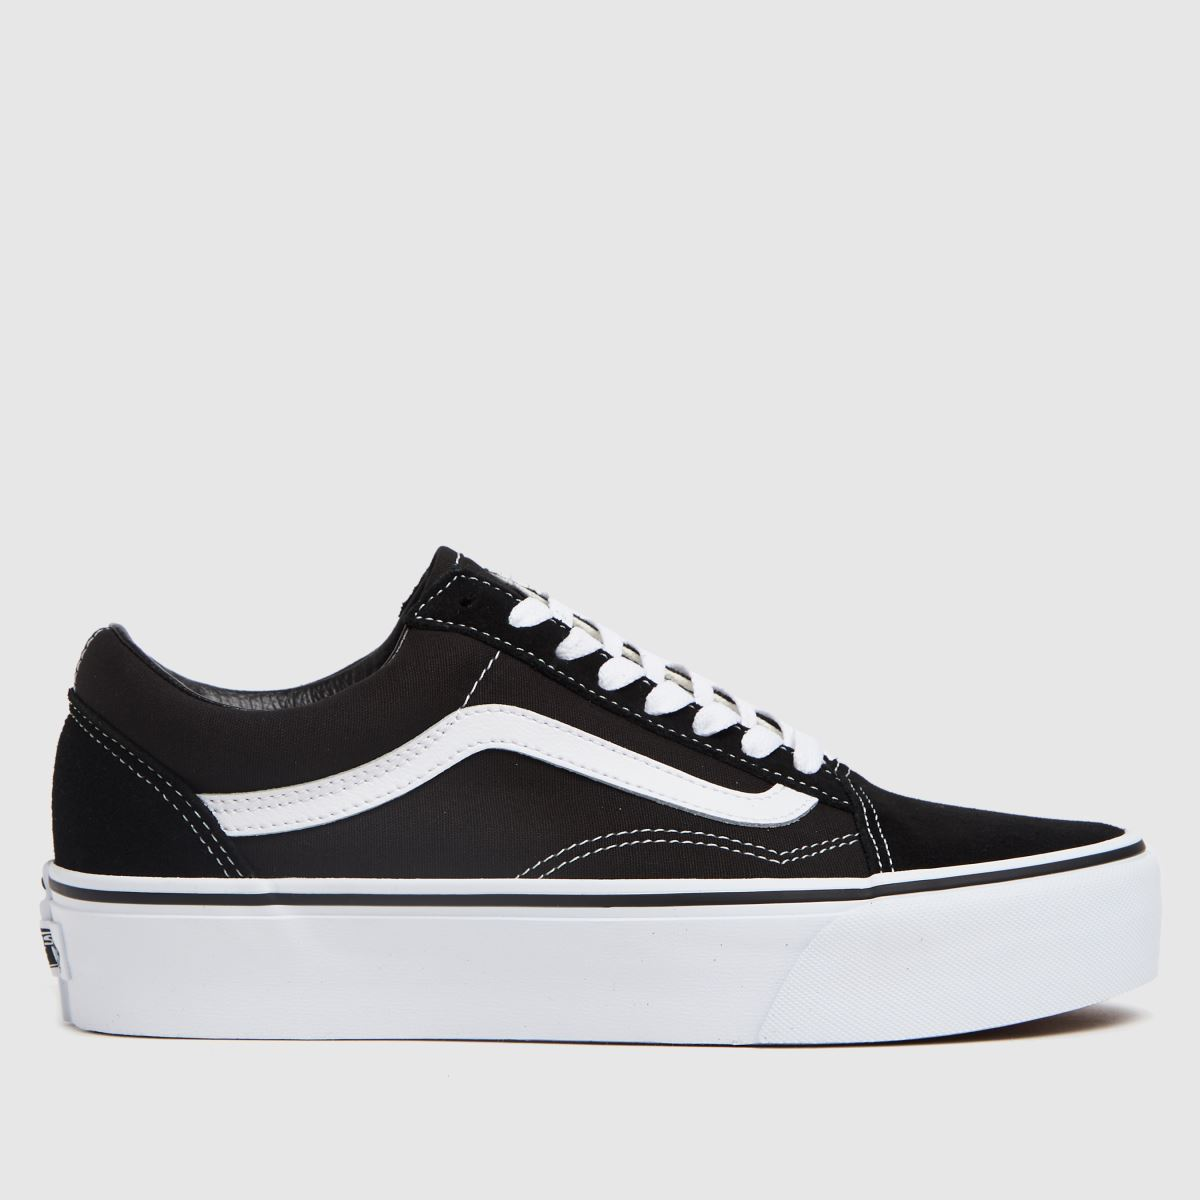 Womens Black Amp White Vans Old Skool Platform Trainers Schuh